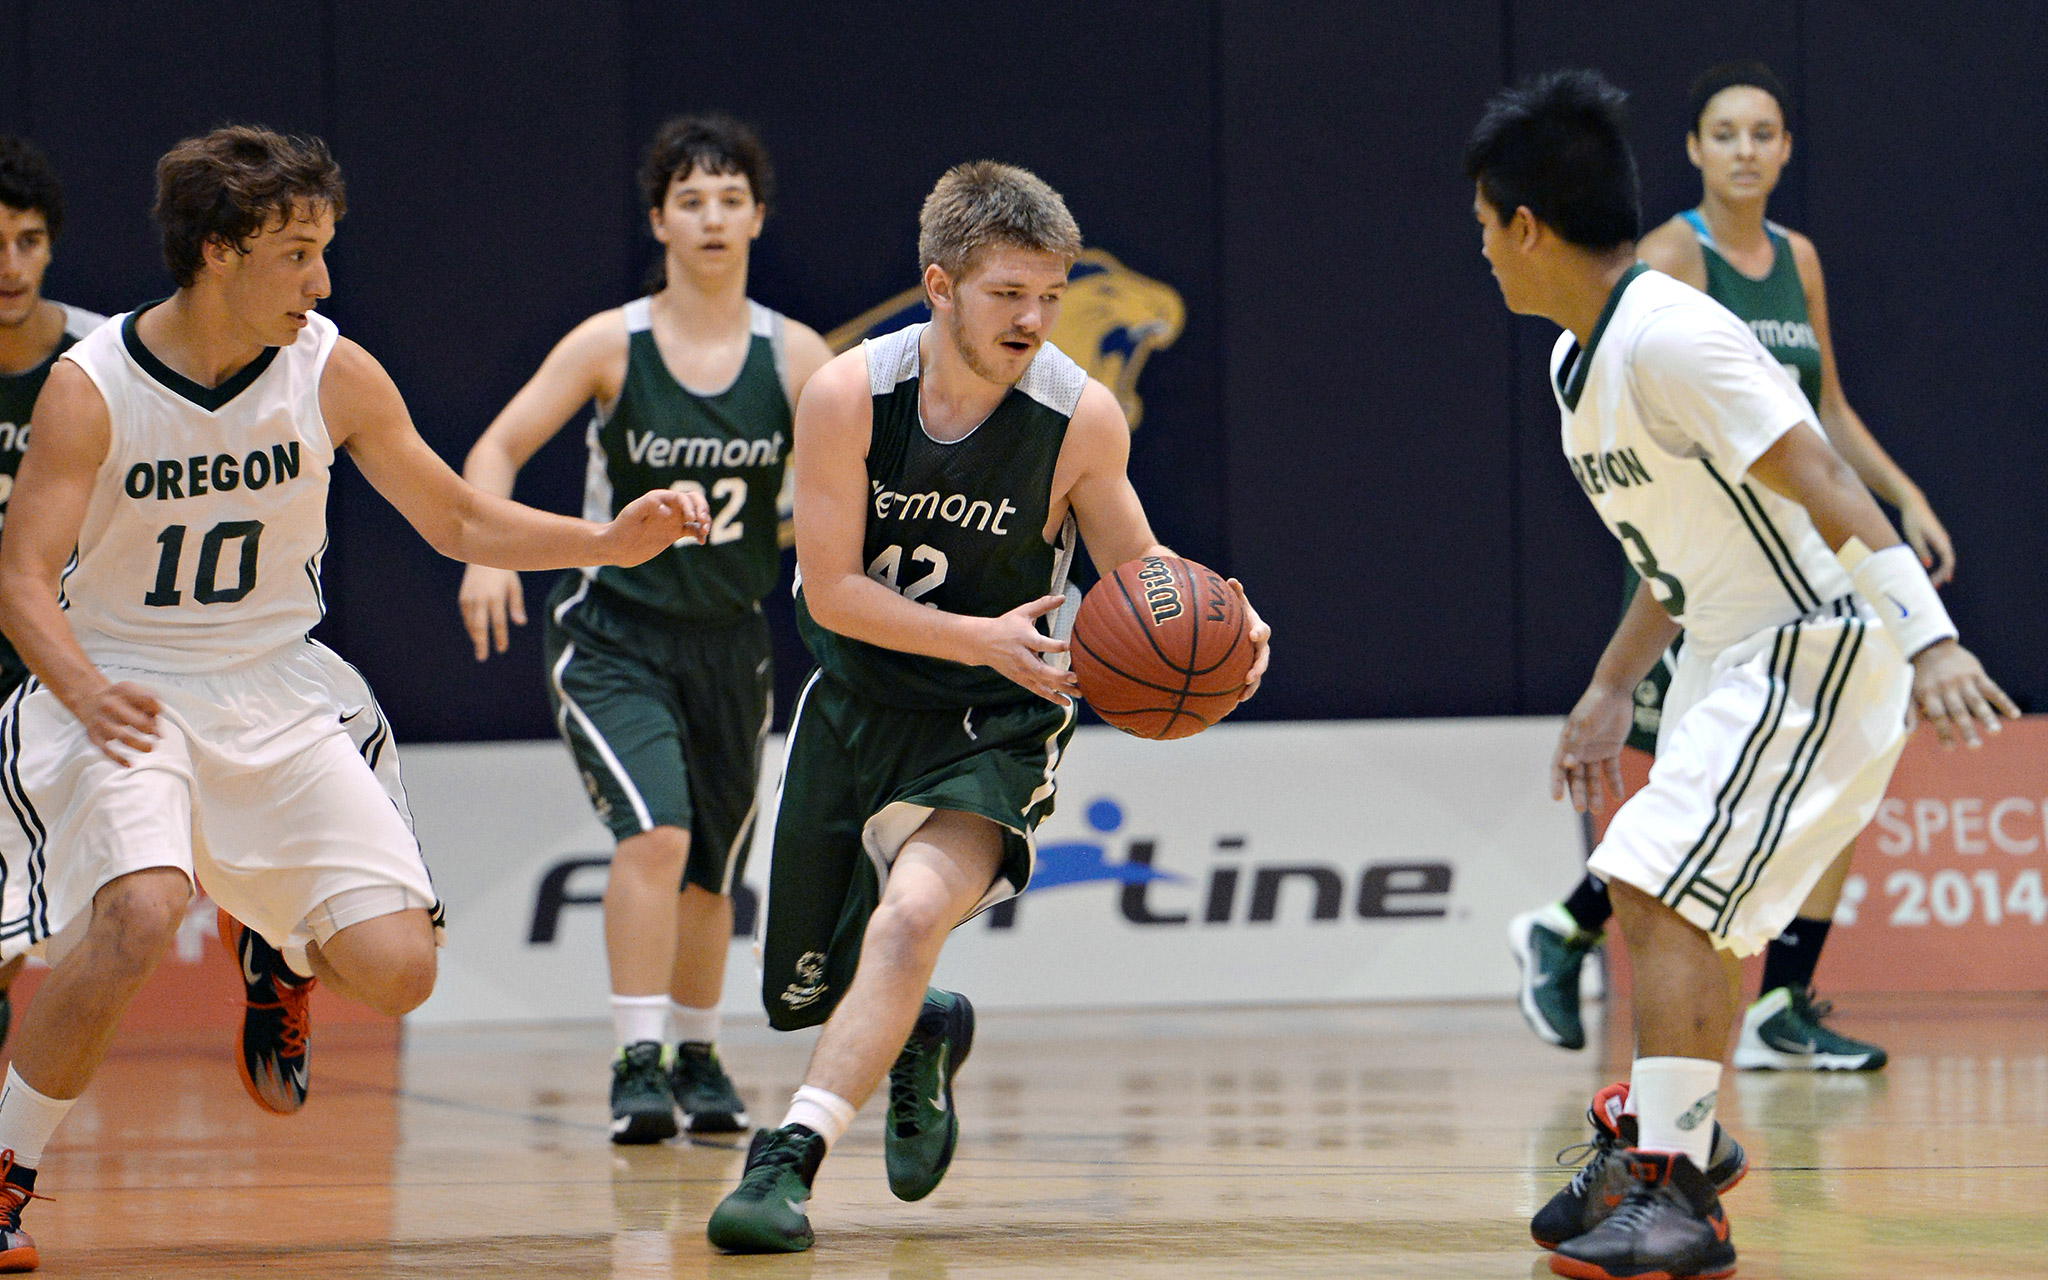 Patrick Burke-Willett of the Vermont Unified Sports five-a-side team leads his teammates down the court against Oregon. The Oregon team went on to claim silver in its division.